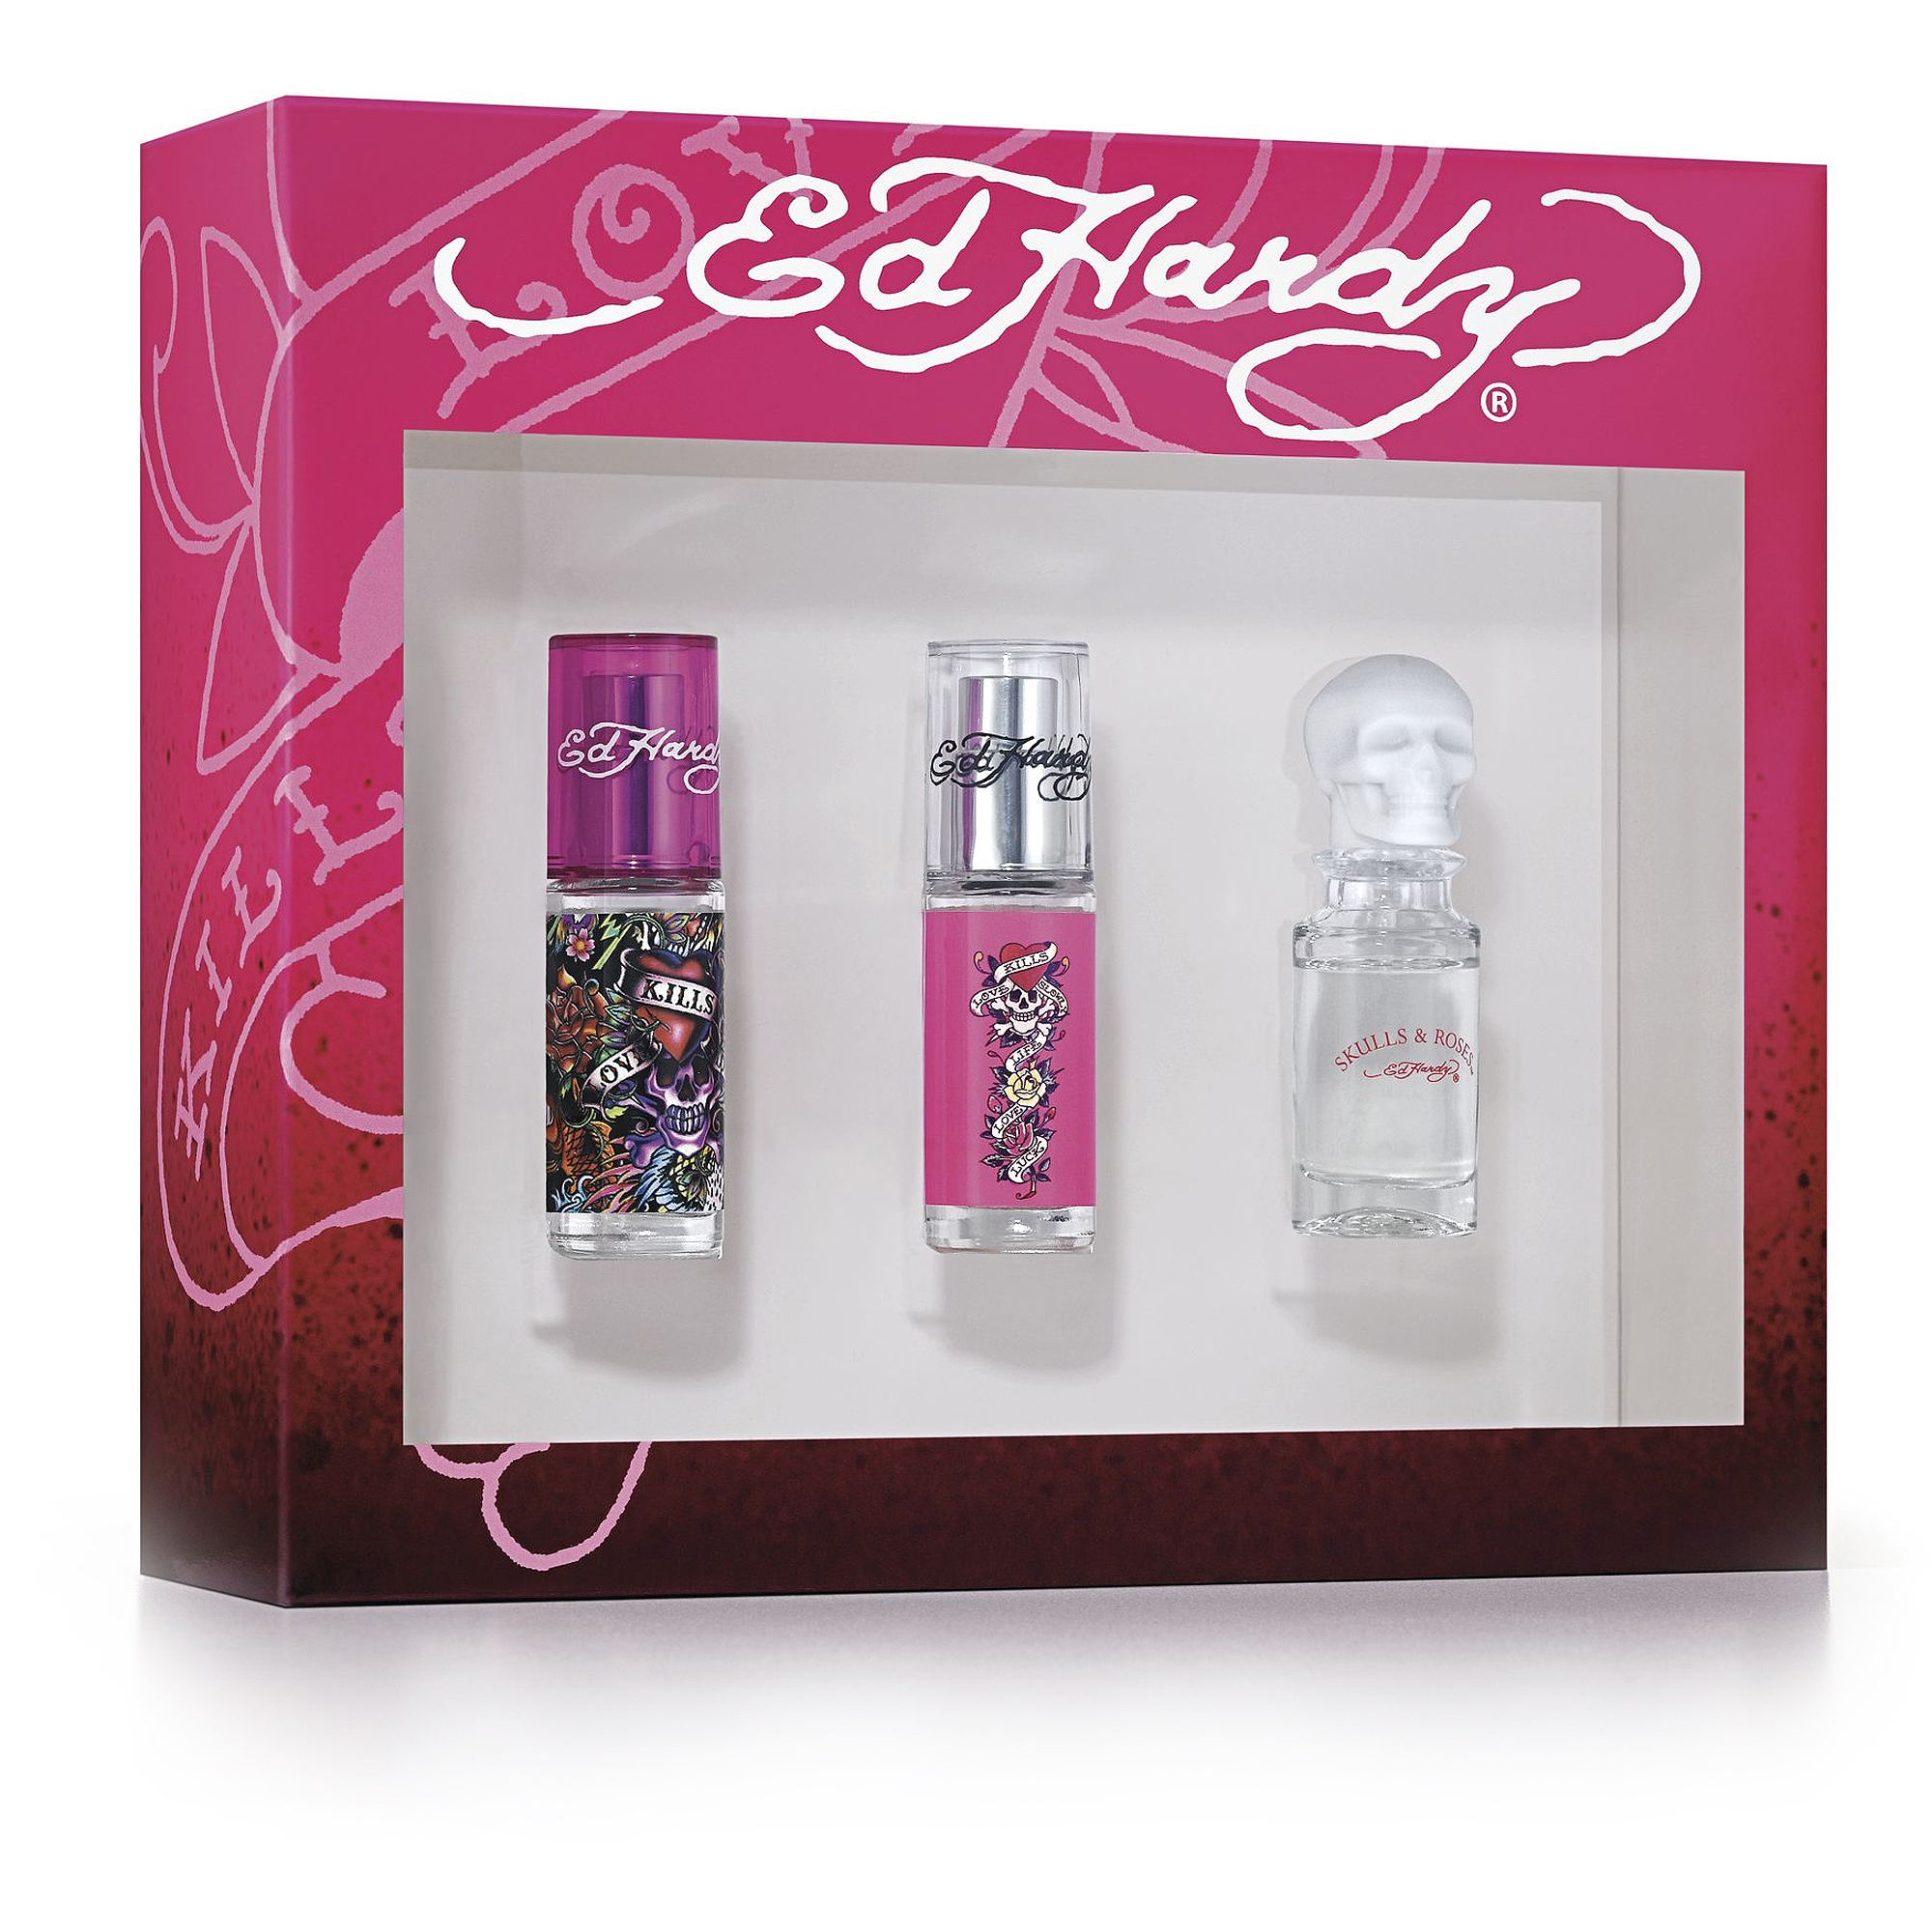 Ed Hardy Variety 3 Pc Gift Set ( Eau De Parfum Spray 0.25 Oz Of Ed Hardyhearts & Daggers + Skulls & Roses ) for Women by Christian Audigier